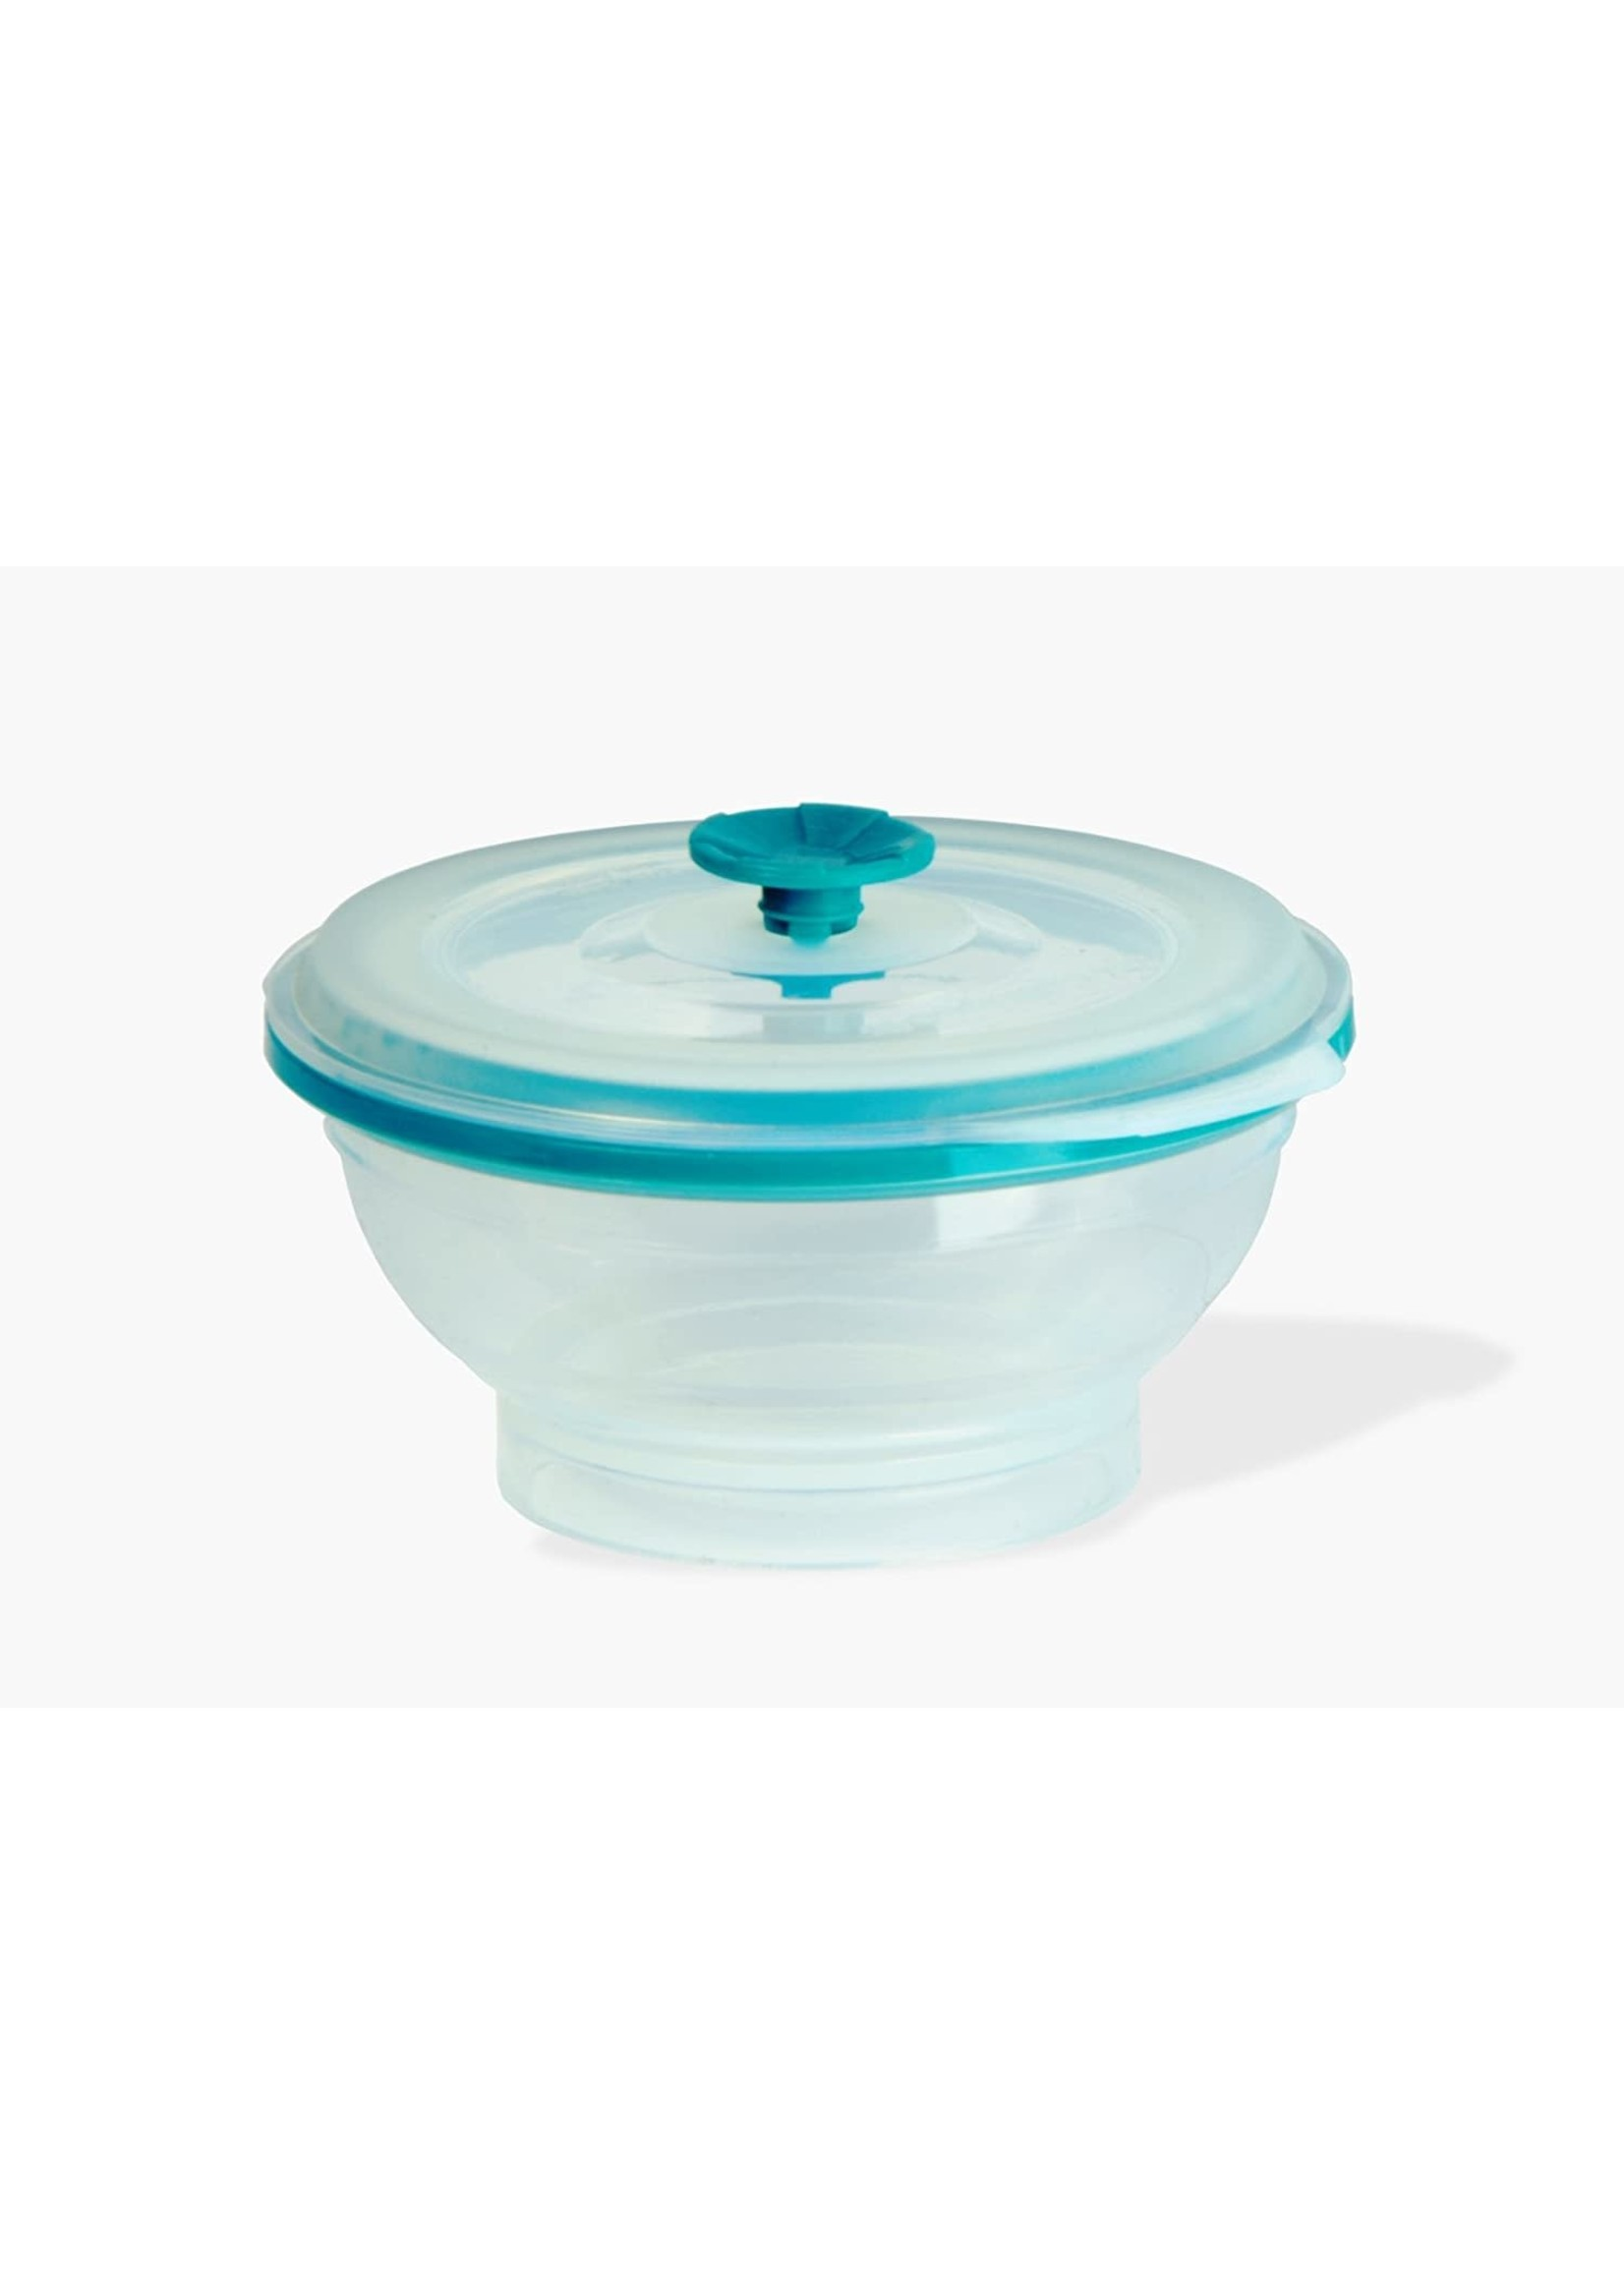 Collapse-It Small Collapse It - 2 cup - Teal